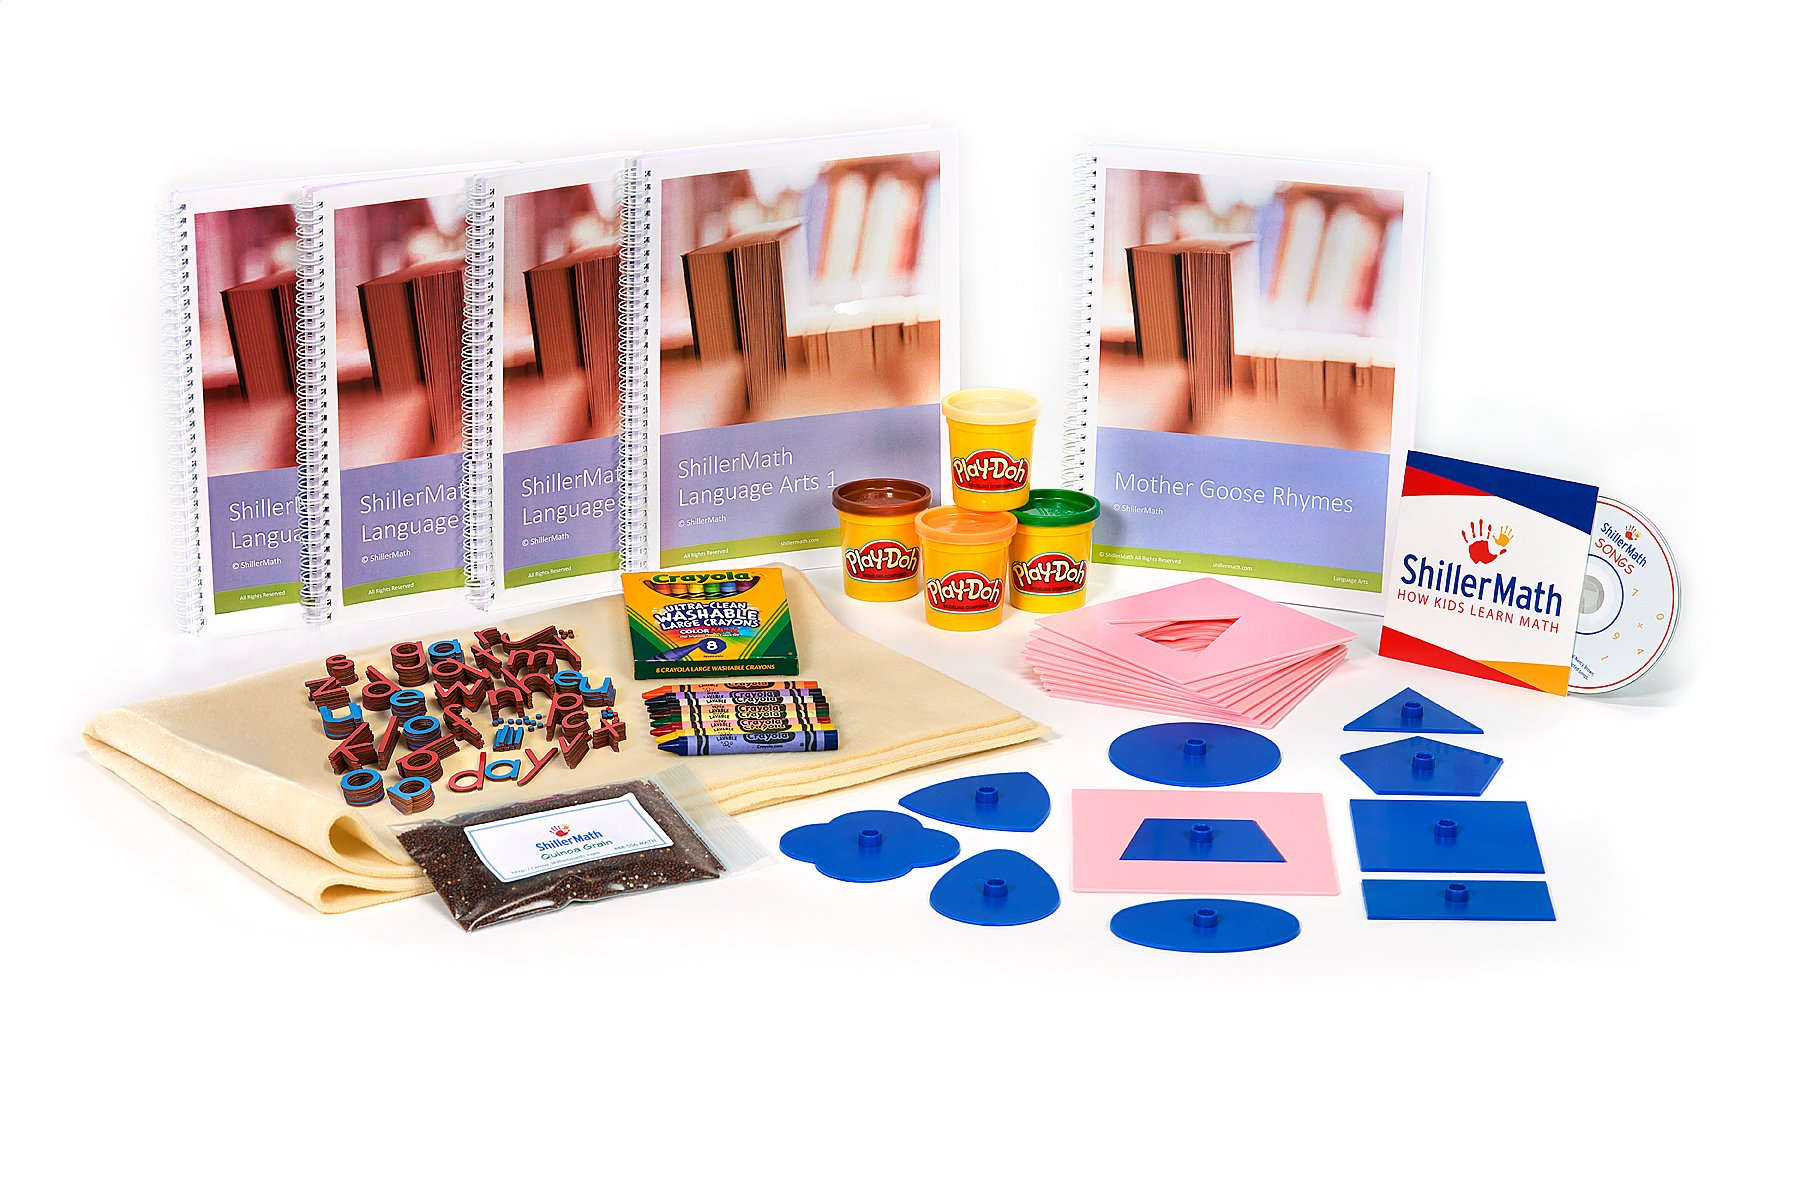 ShillerMath - Language Arts Kit A - Homeschool English Montessori Curriculum - (Ages 3-6)